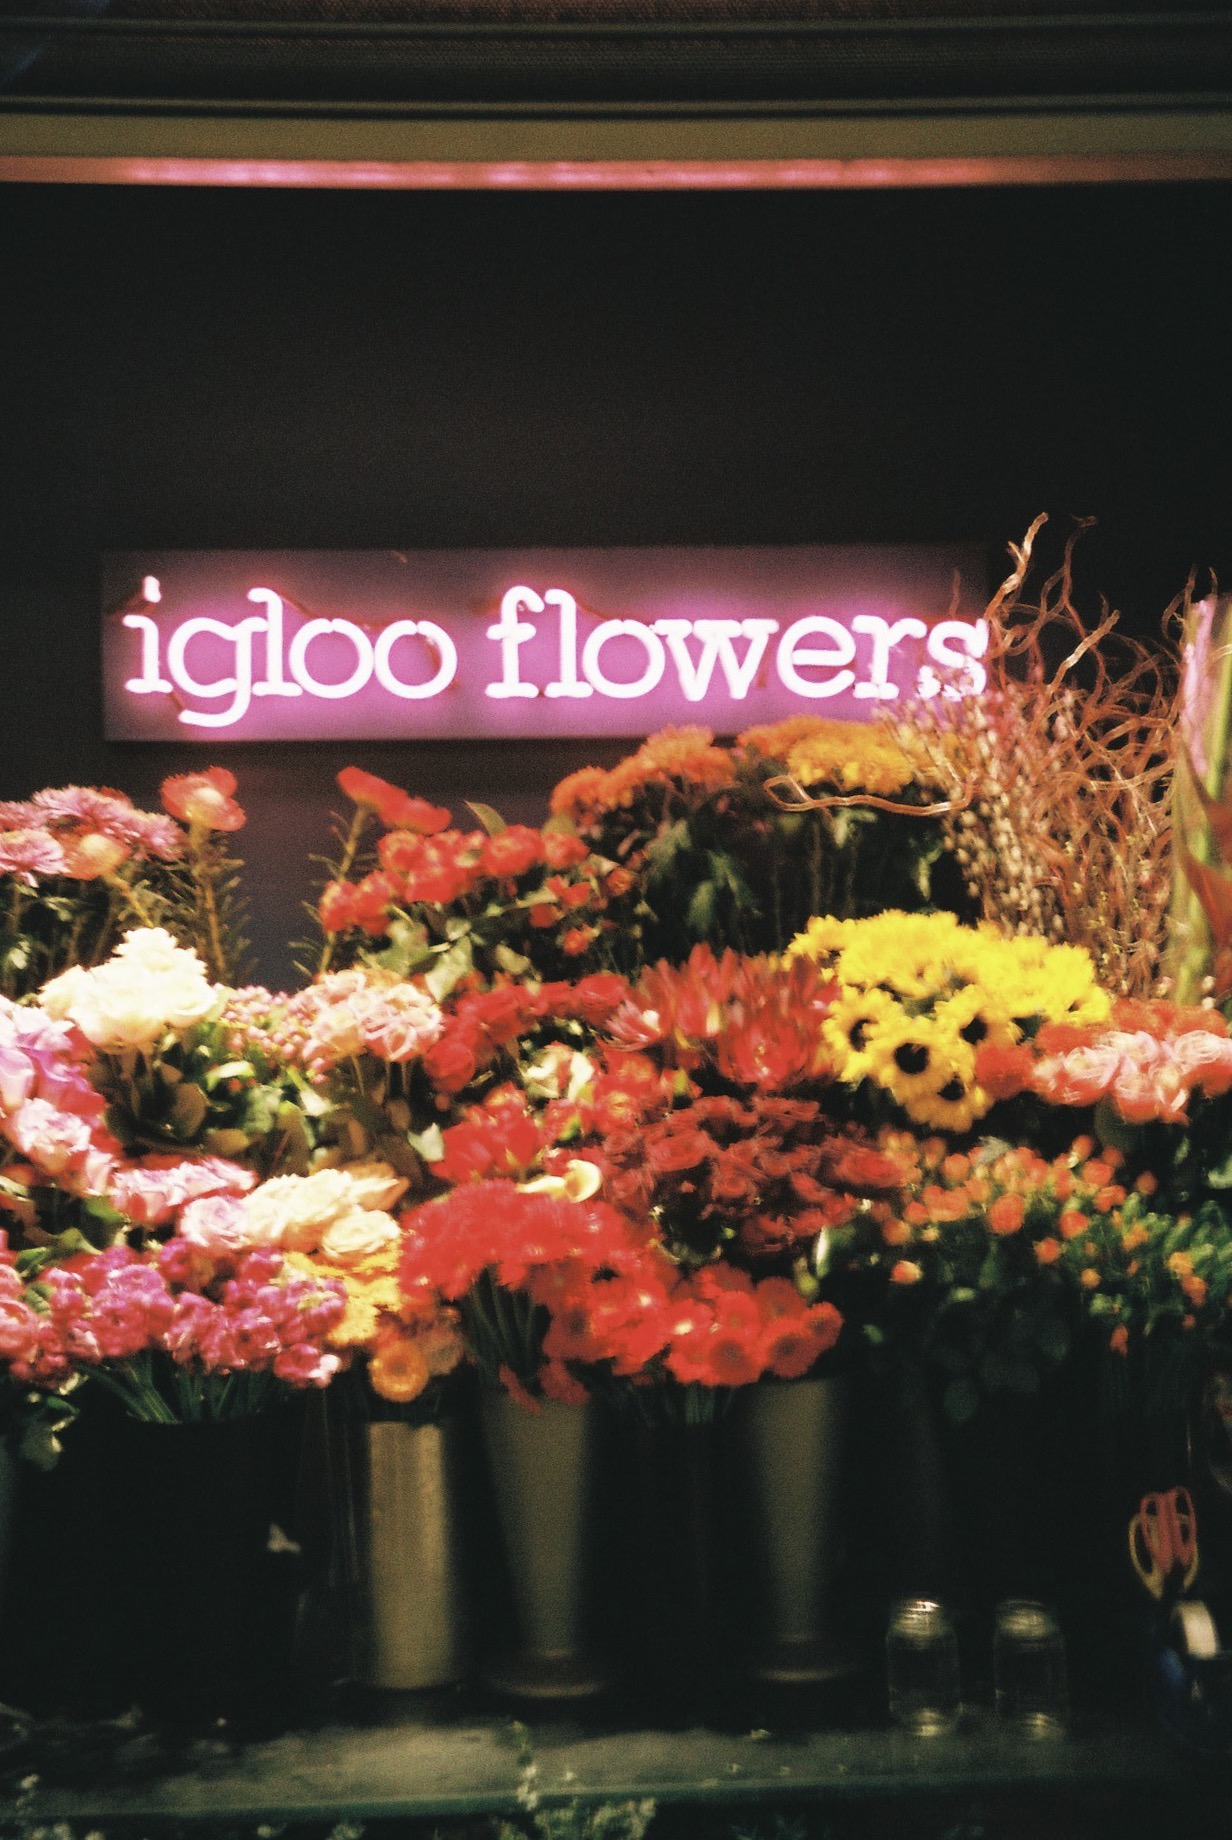 A flower shop at Waterloo station.  / Uma banca de flores em Waterloo.